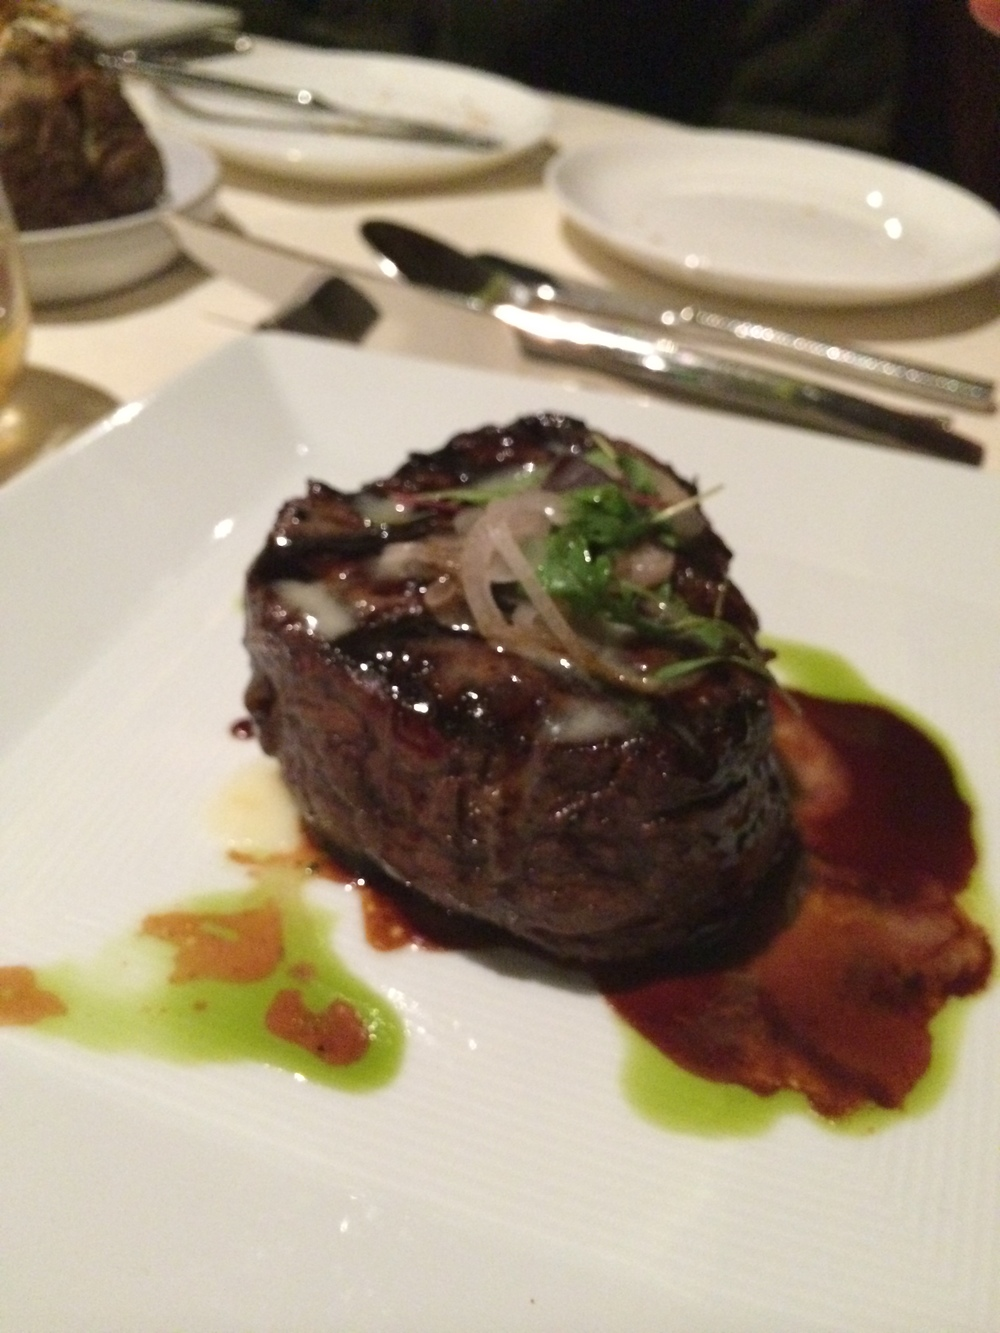 A shot of Vicky's filet mignon. A beautiful piece of meat.